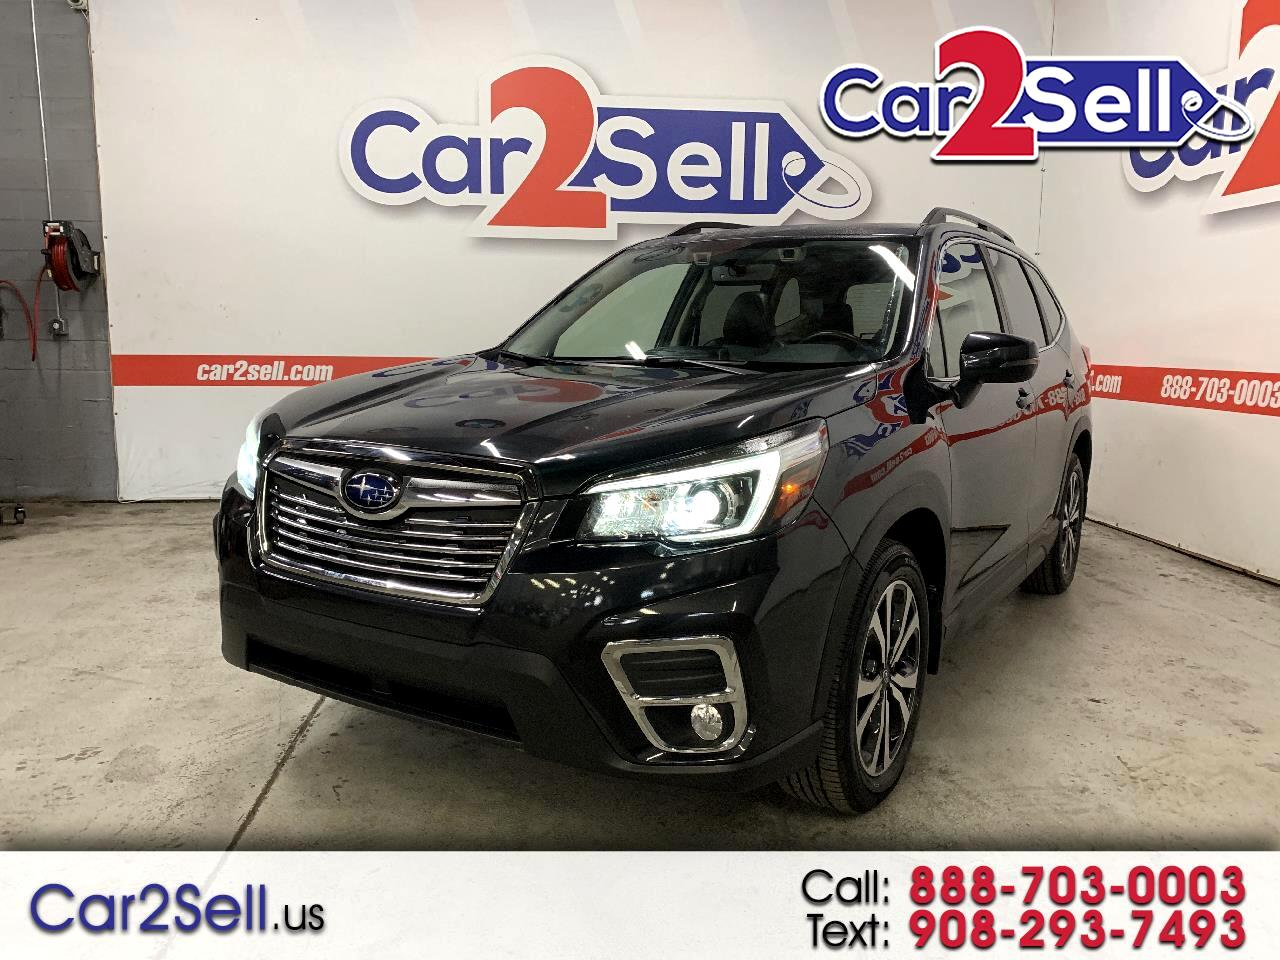 Subaru Forester 2.5i Limited 2019